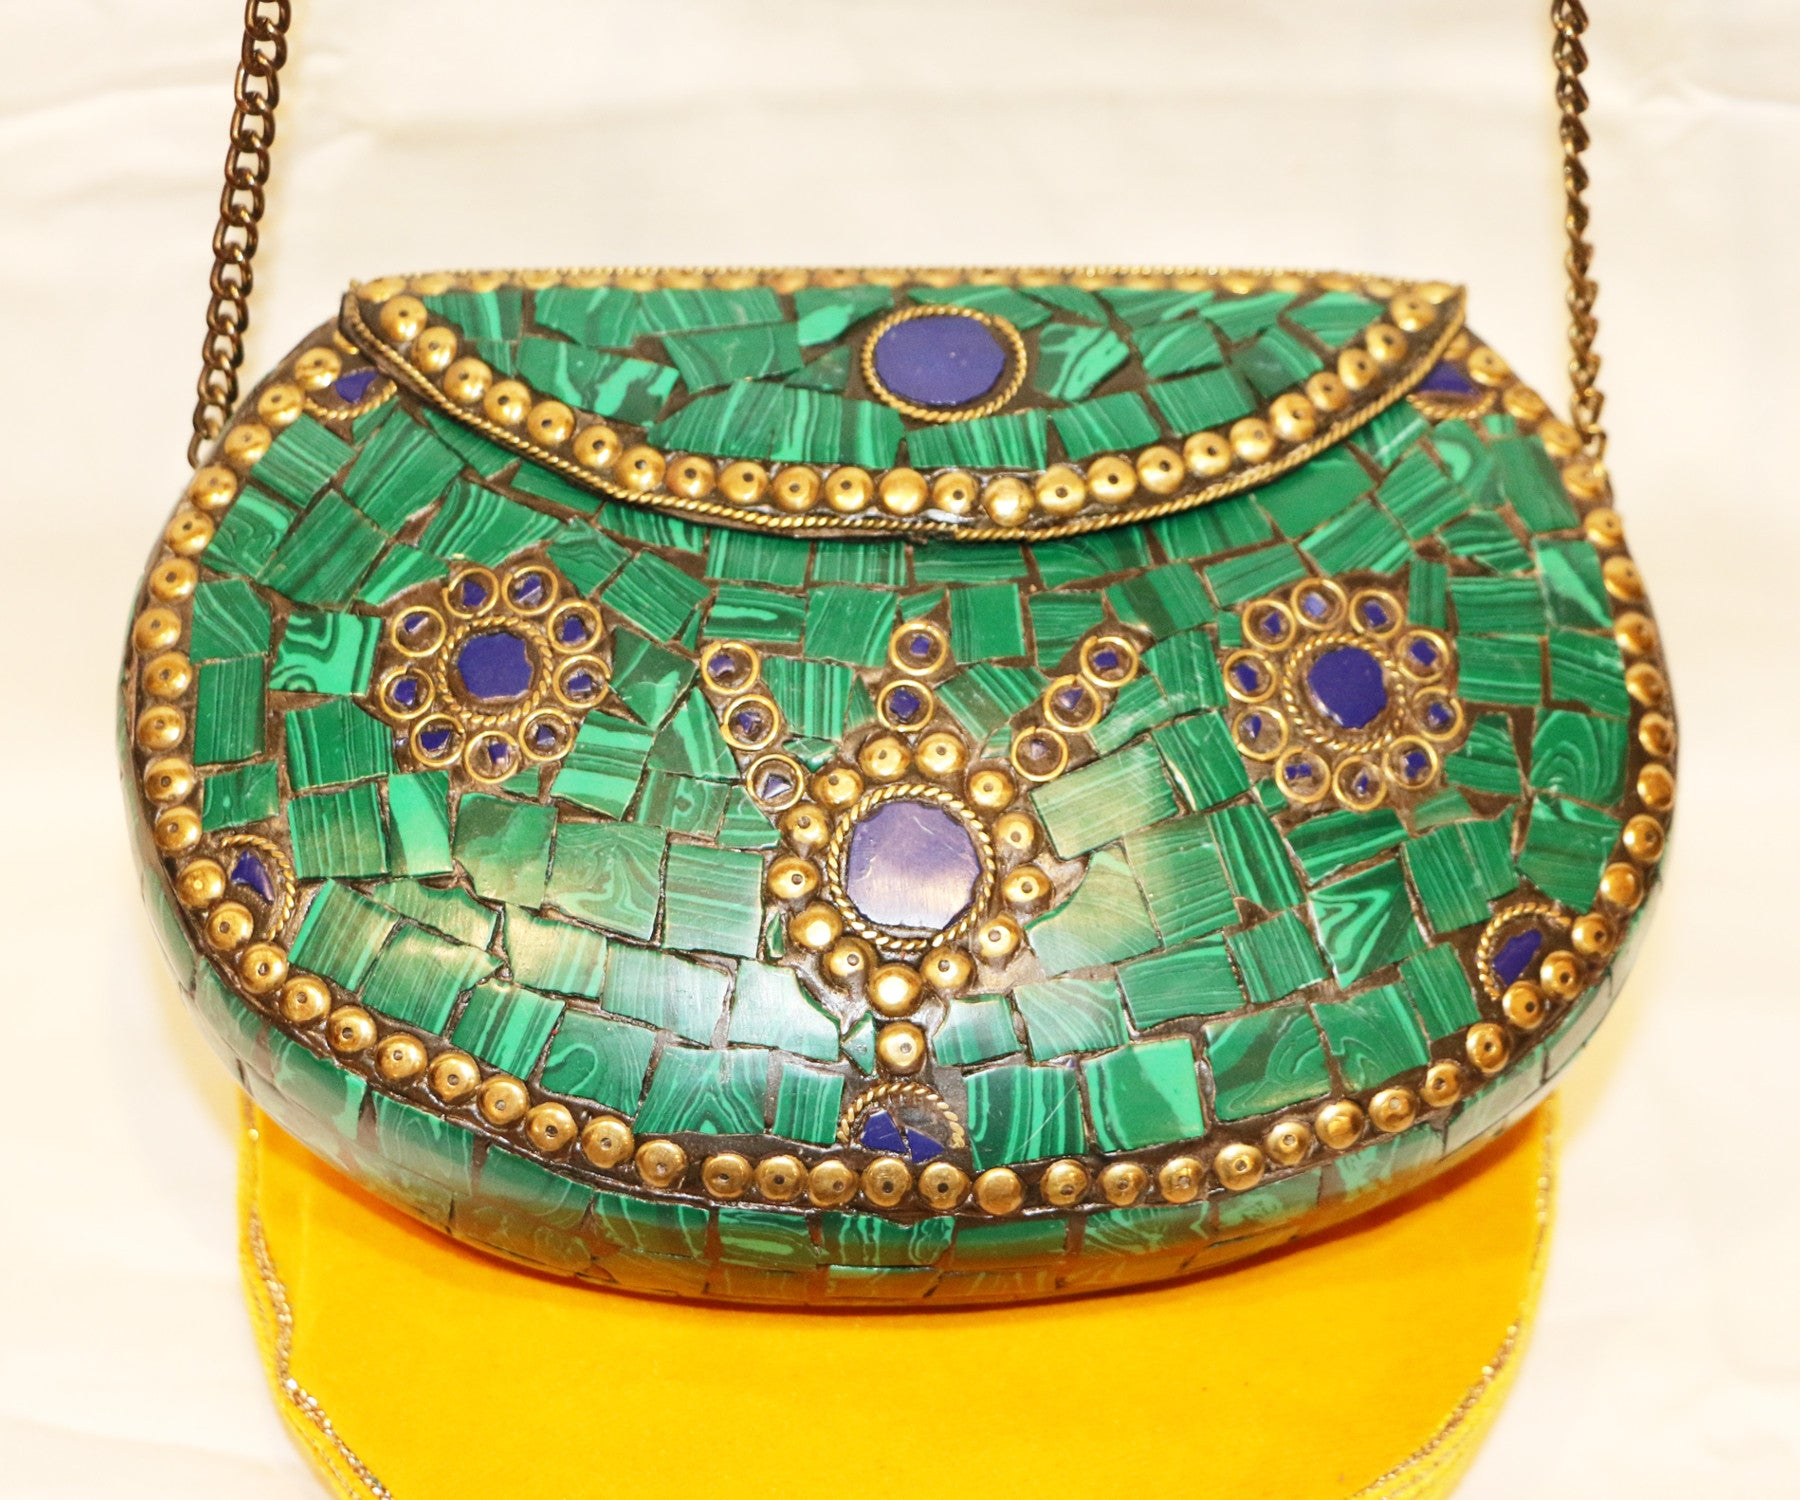 Turquoise tribal bag - Tibet Arts & Healing